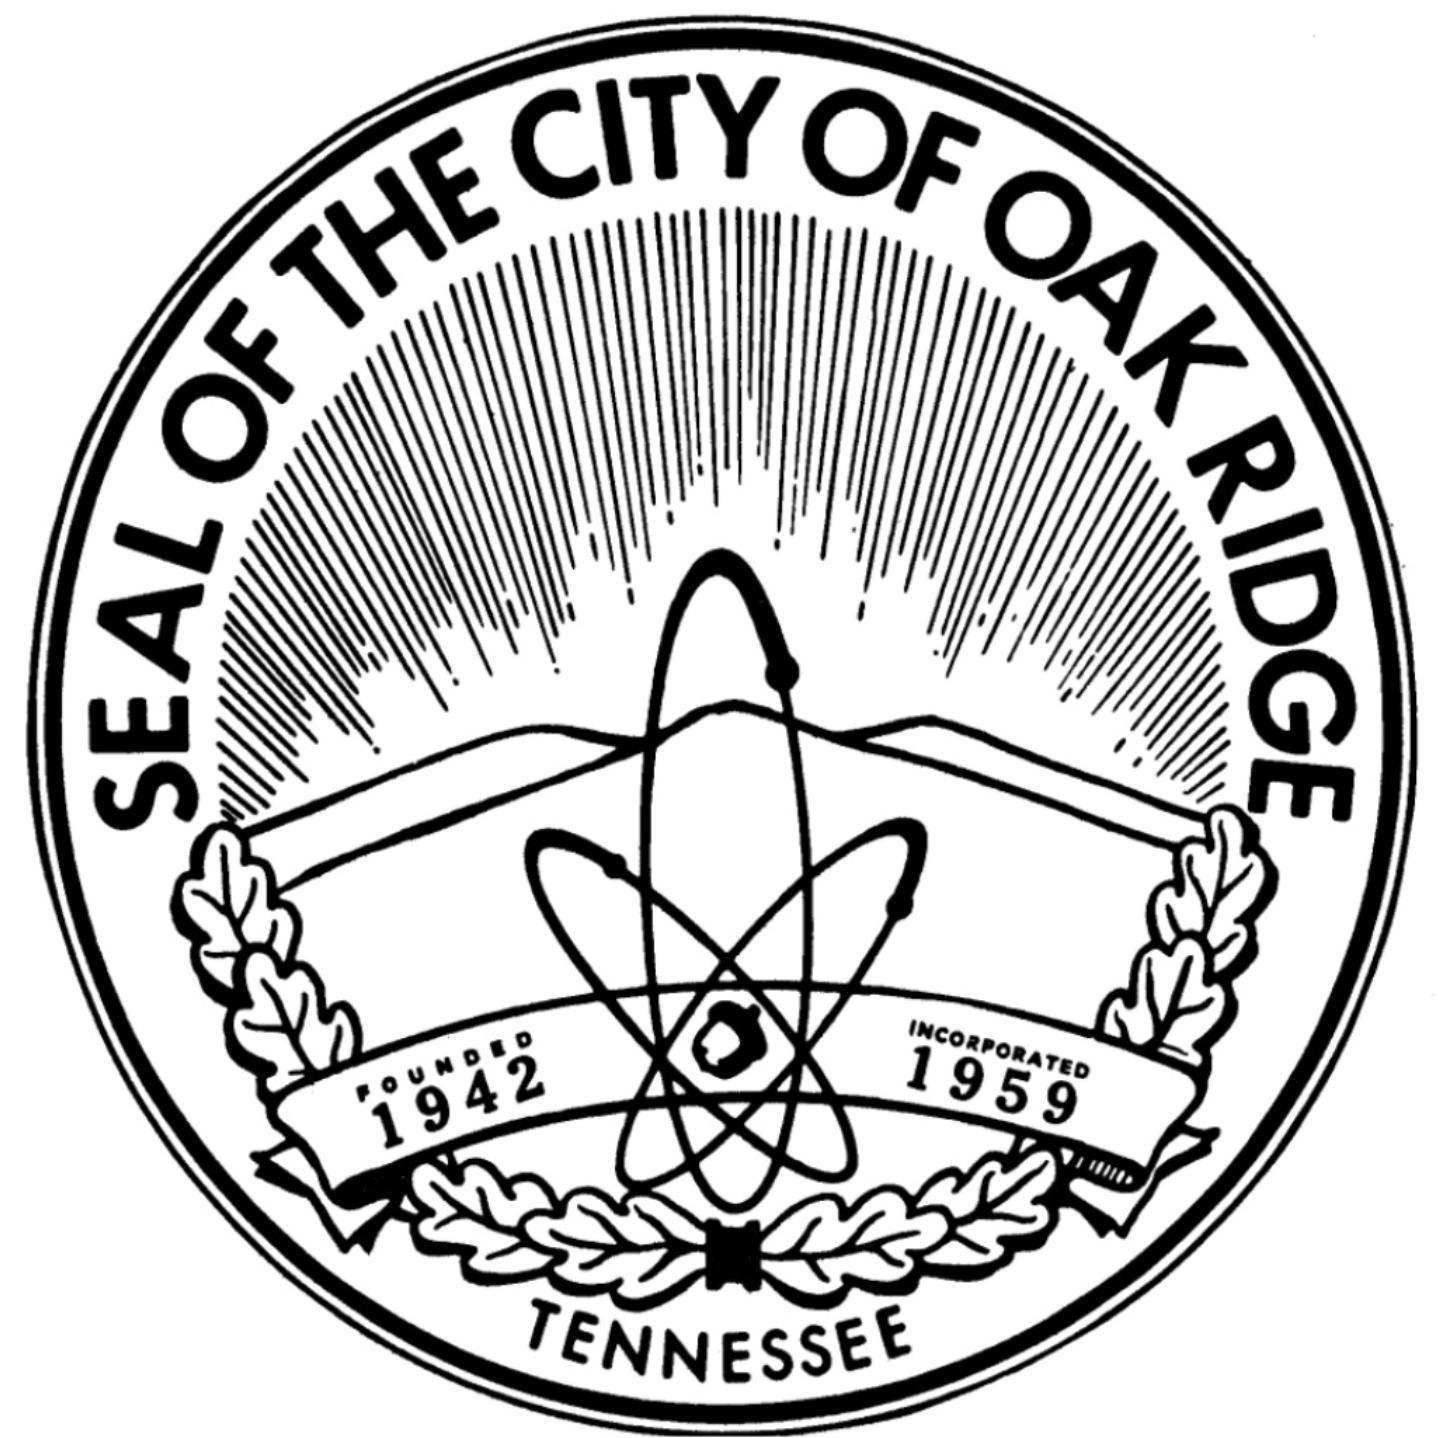 Welcome to the City of Oak Ridge, Tennessee